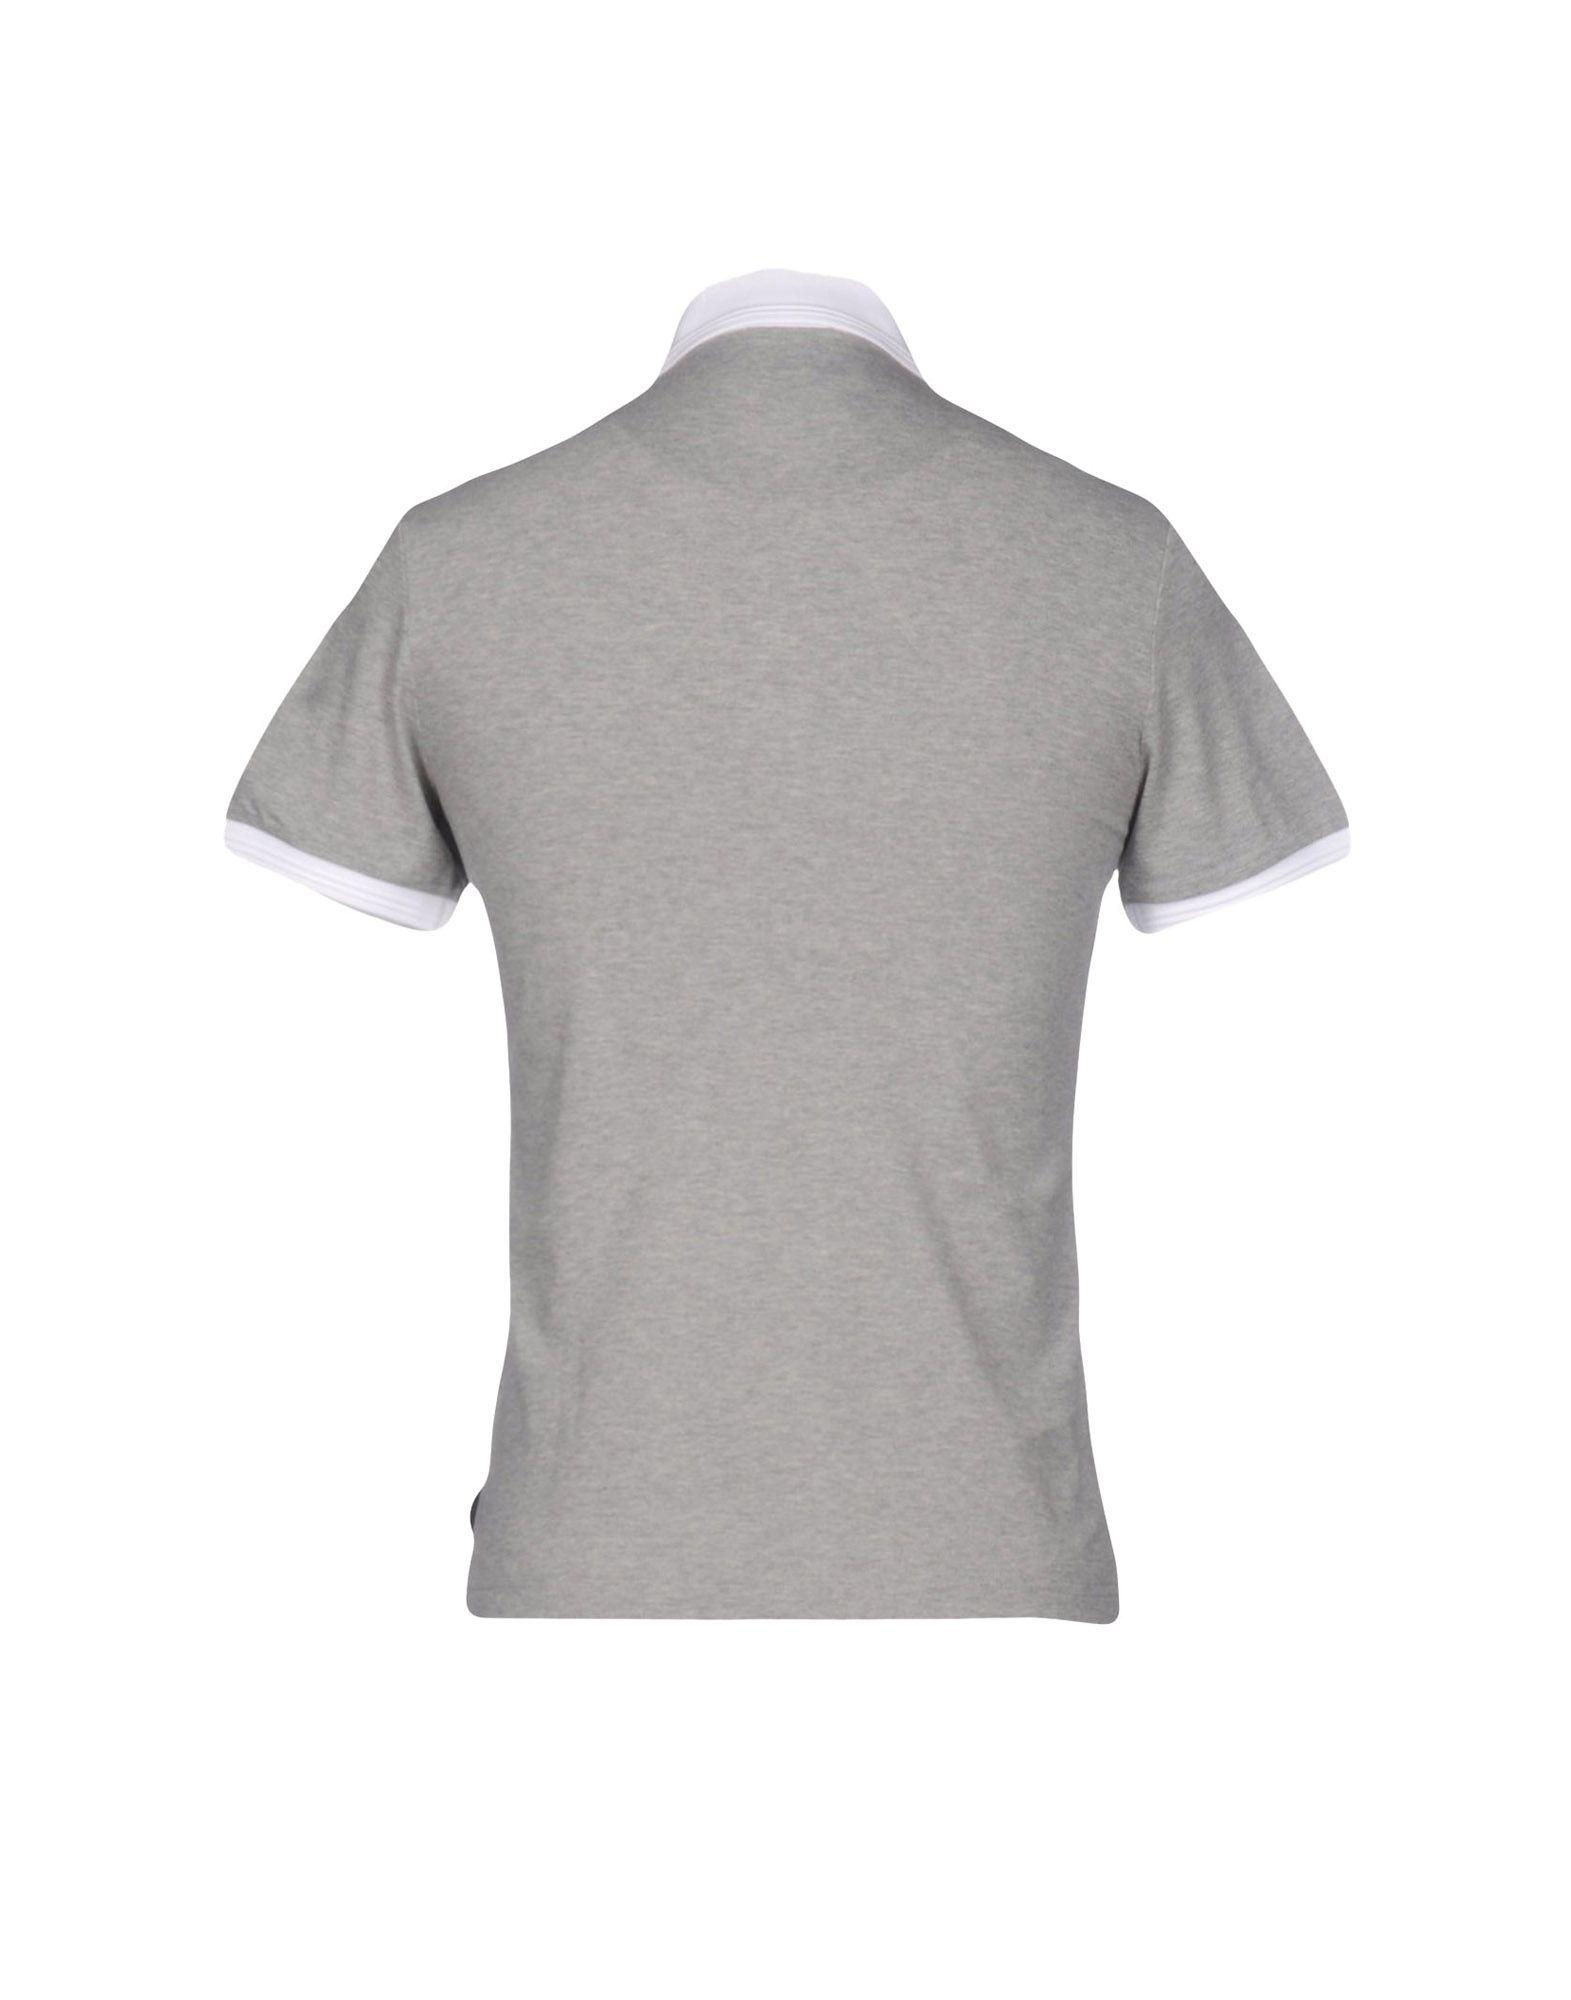 b42f2a999 Lyst - Moncler Polo Shirt in Gray for Men